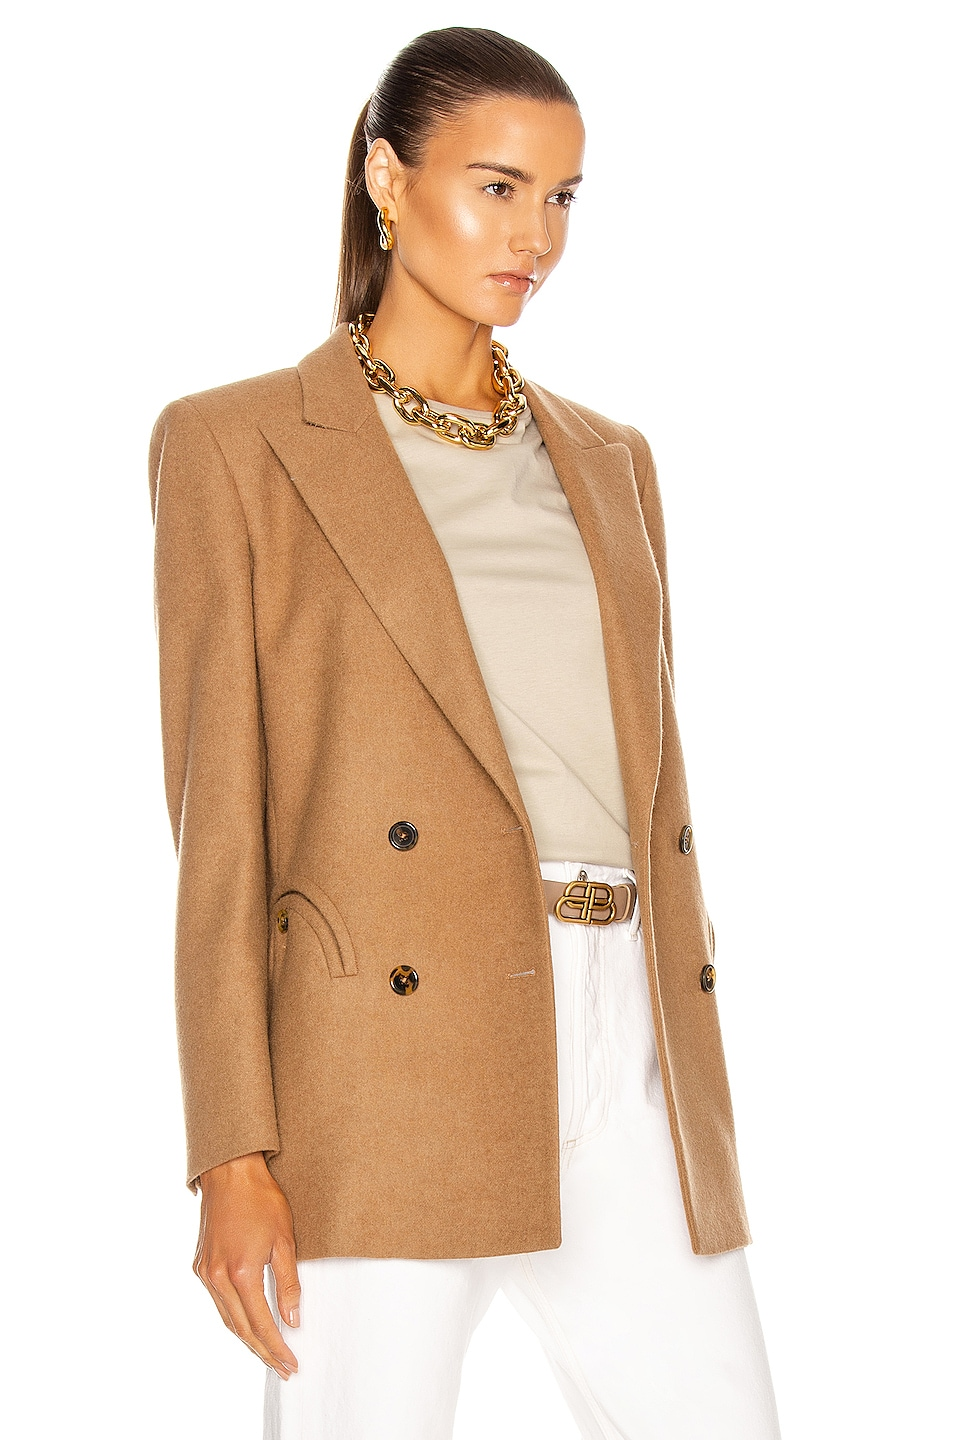 Image 3 of Blaze Milano Essential Cholita Everyday Blazer in Camel